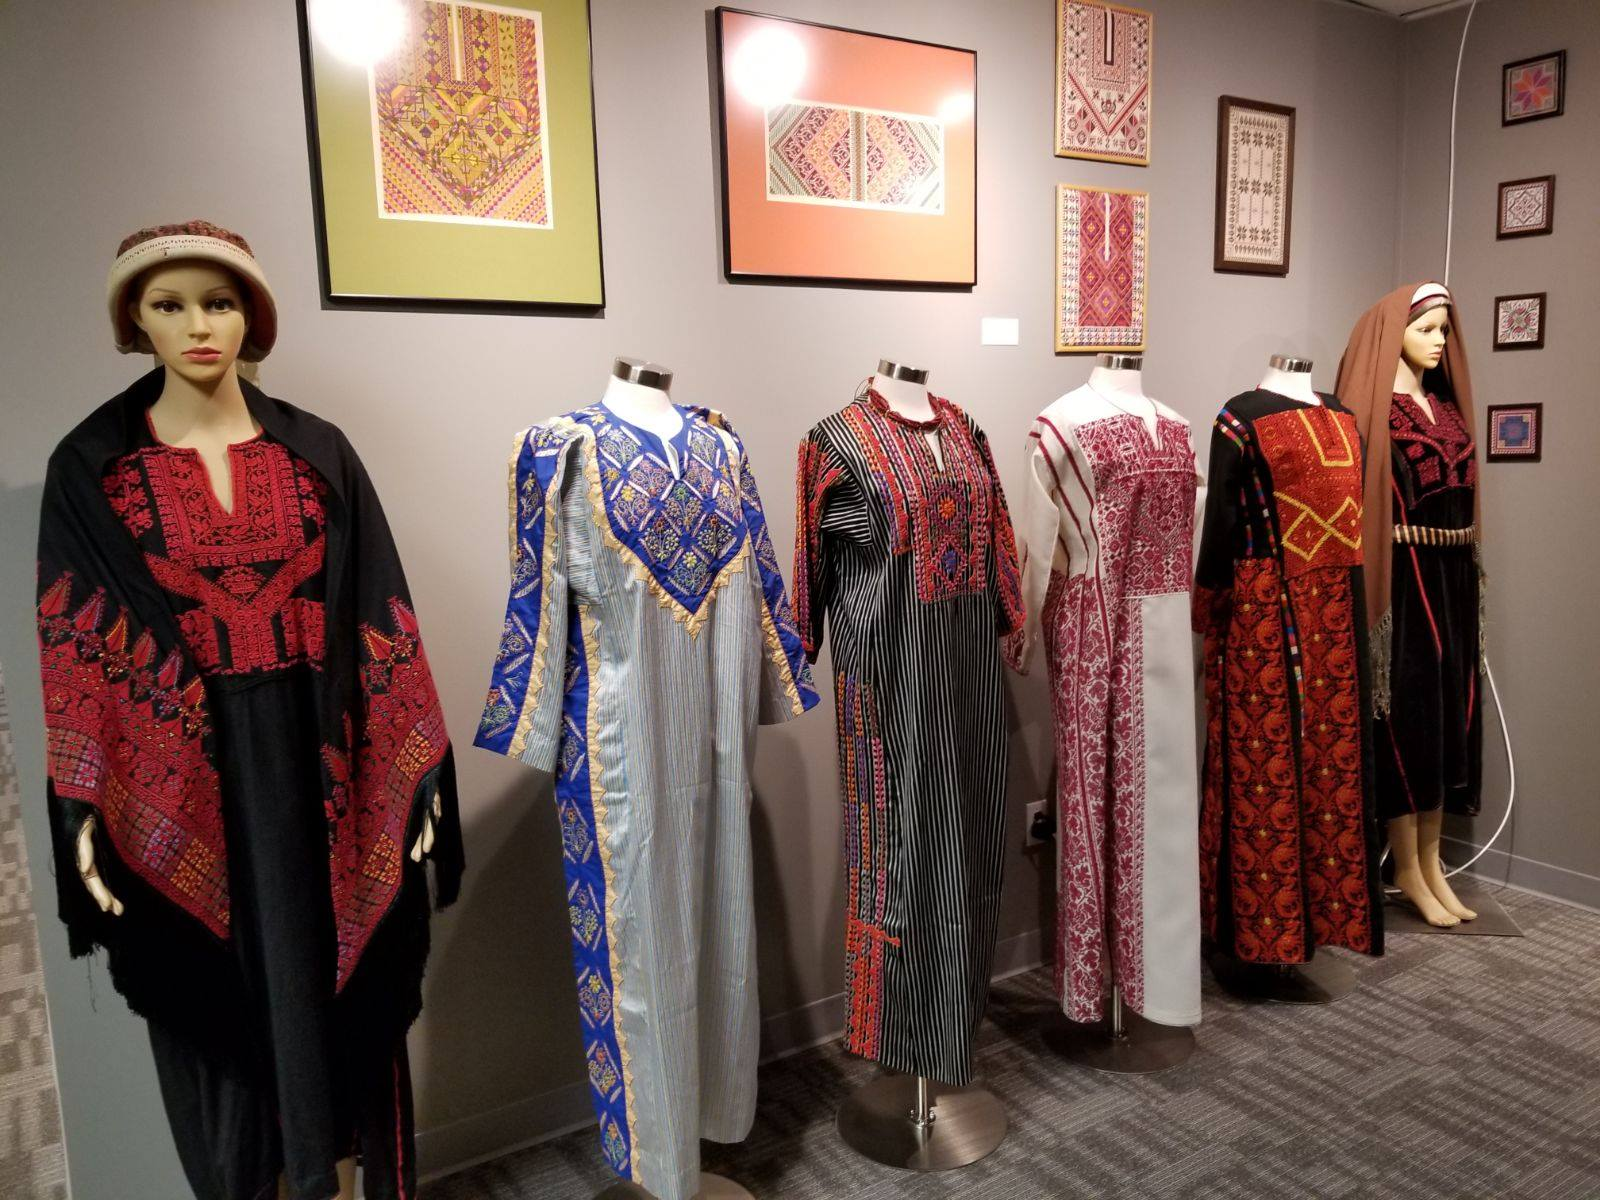 First Palestinian-themed museum in the US showcases art, culture and history